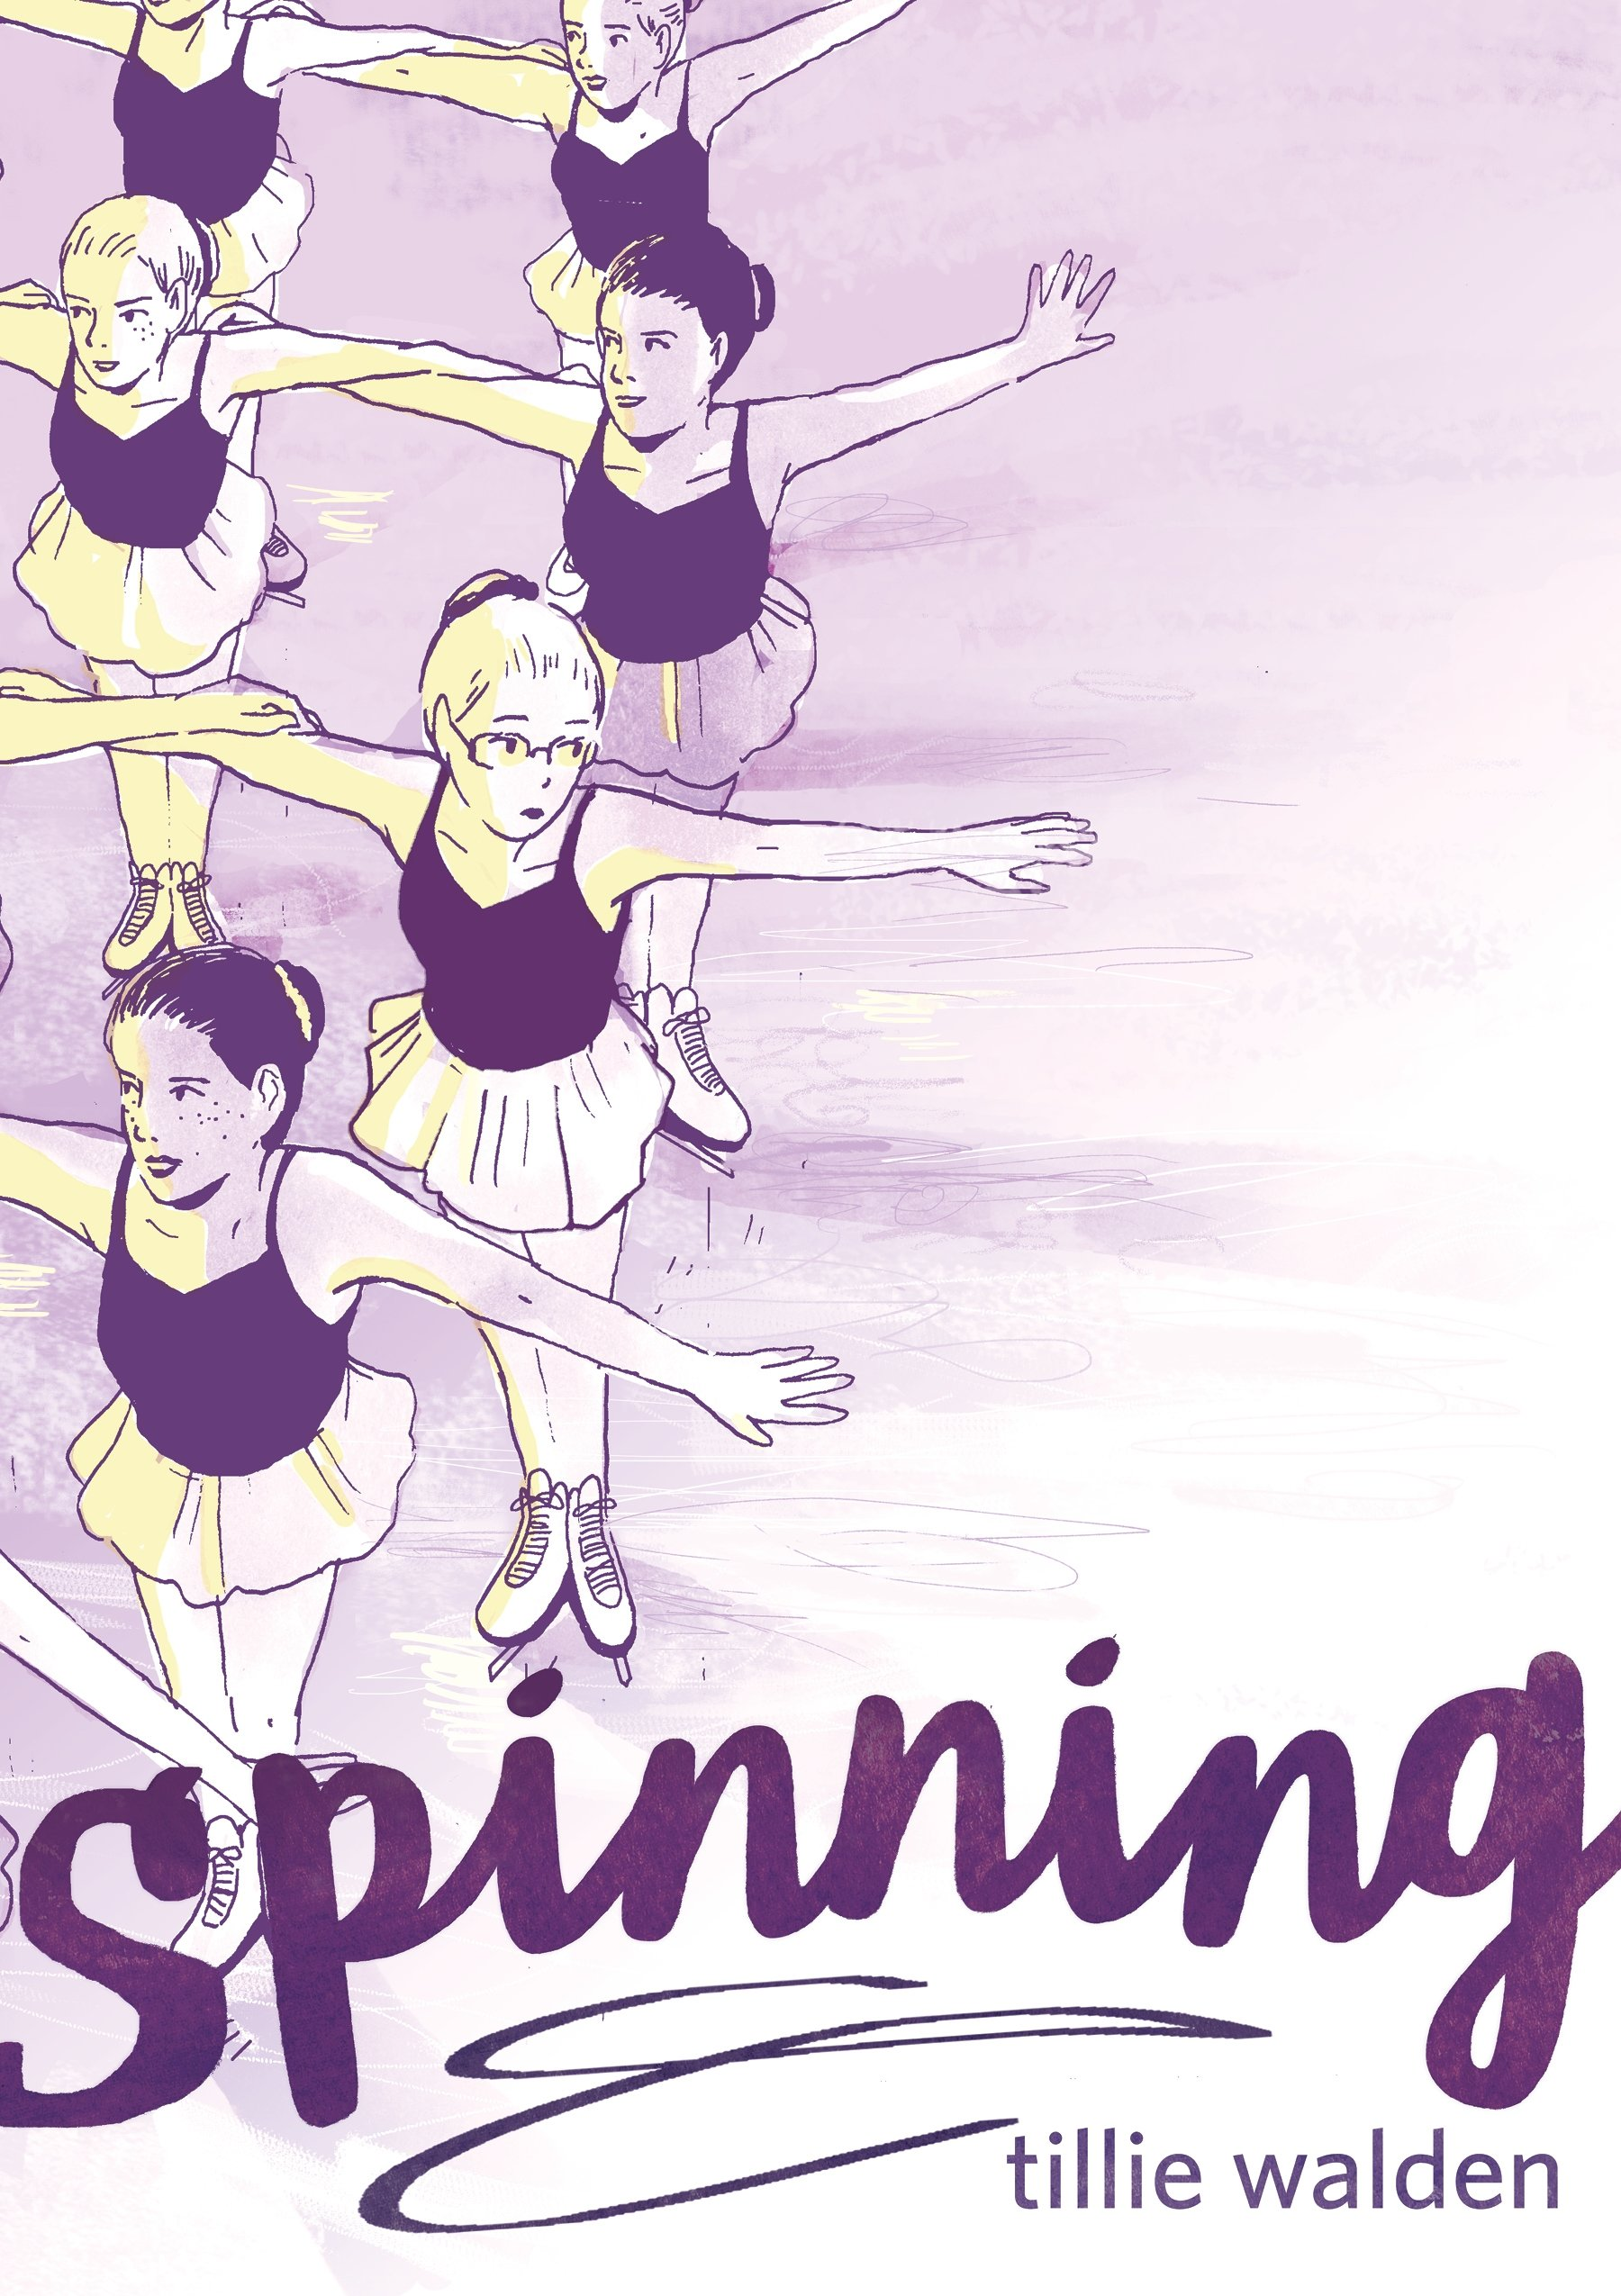 Spinning, by Tillie Walden